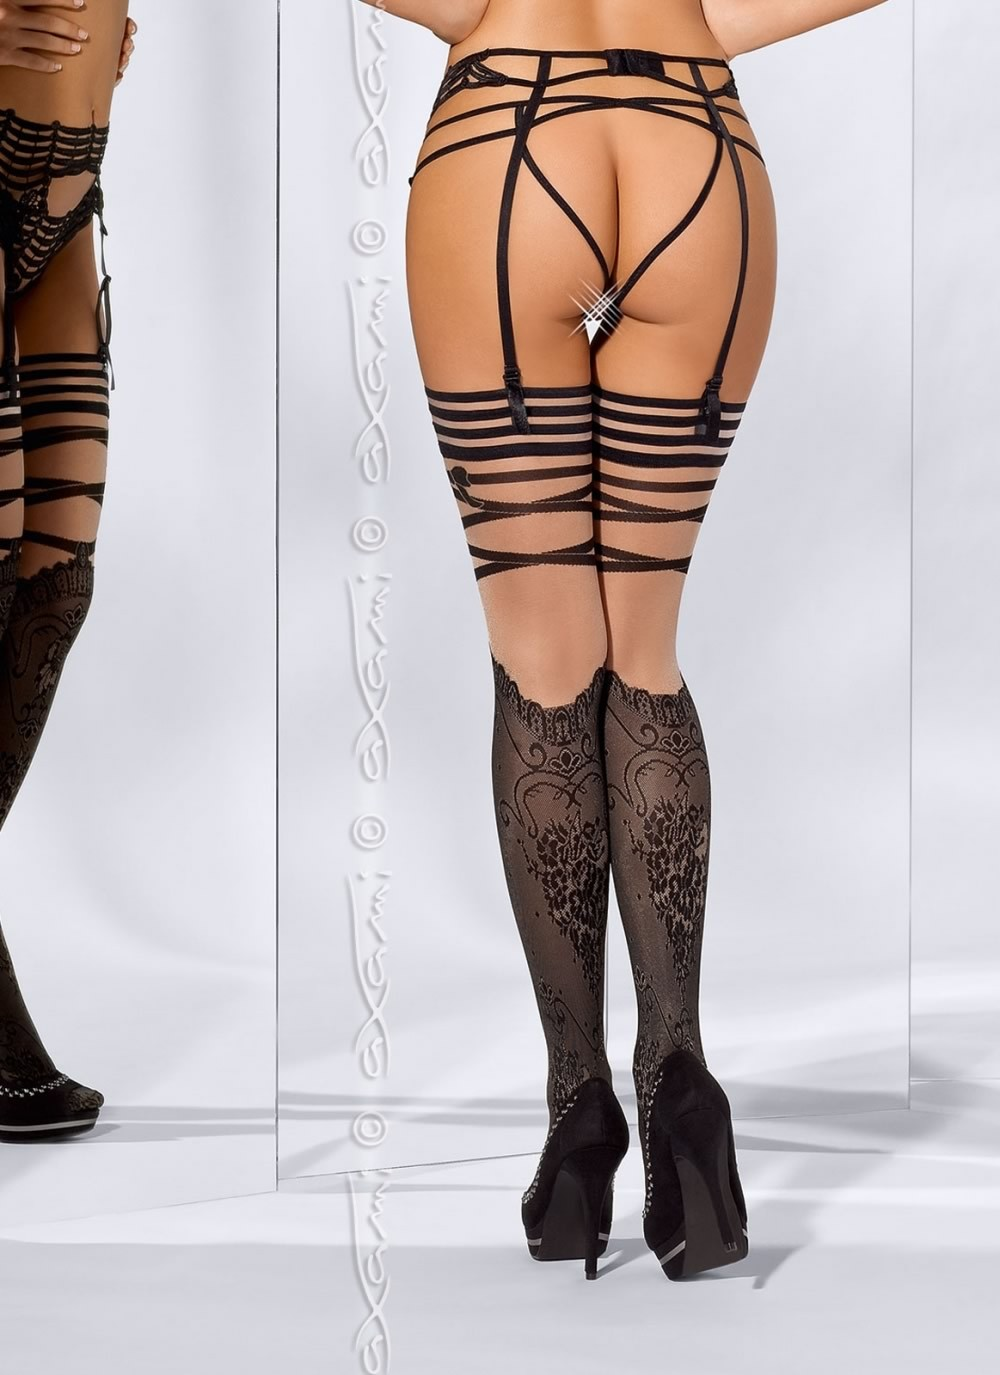 French Kiss Stockings - Back